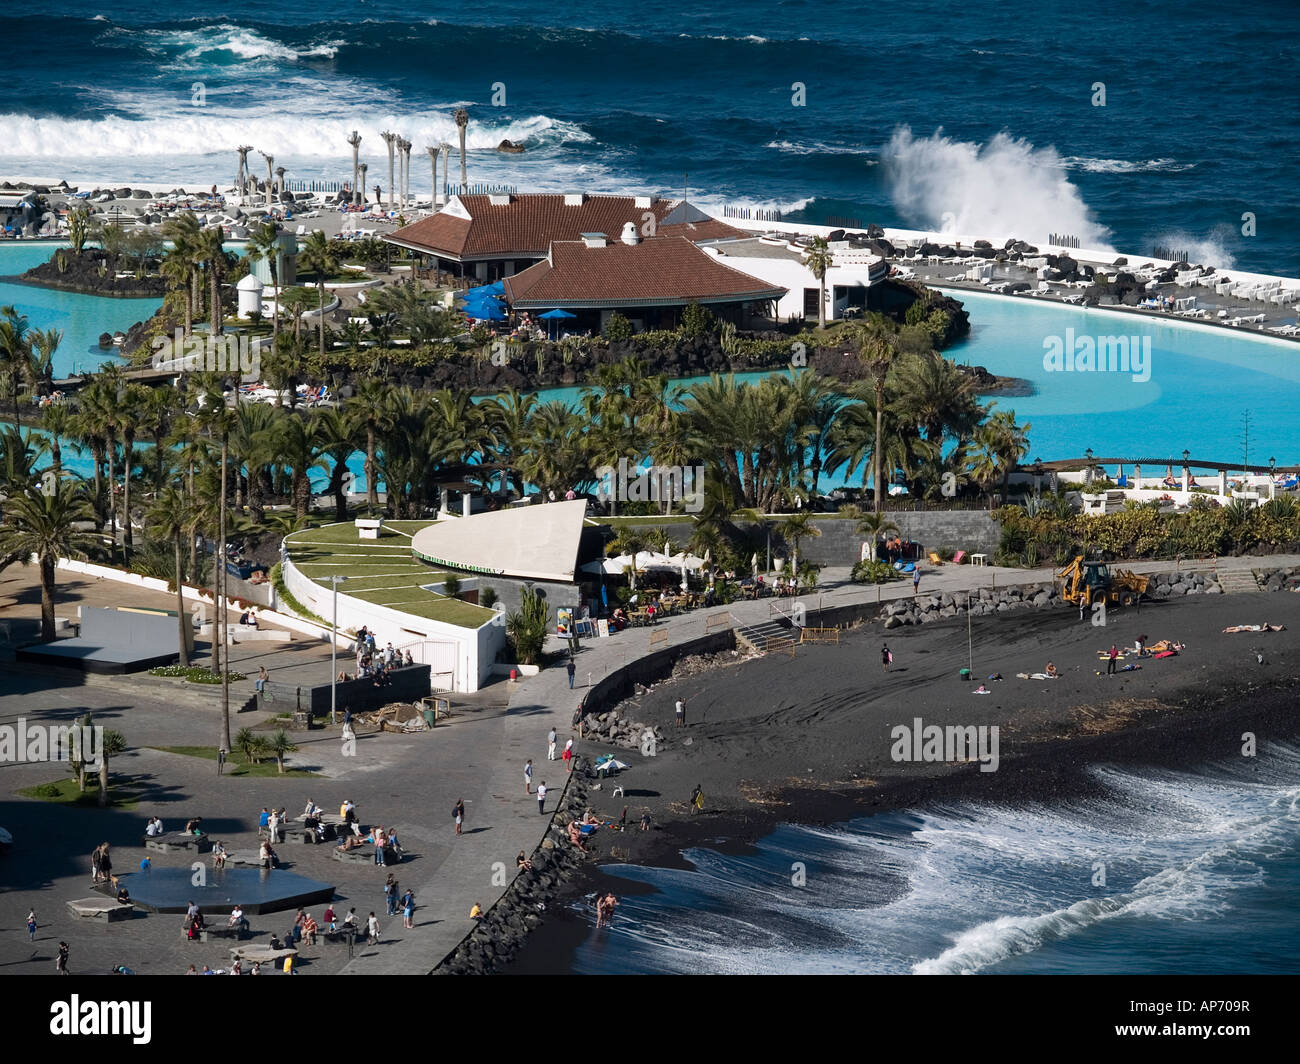 The Lido San Telmo or Costa Martianez in Puerto de la Cruz designed Stockfoto...